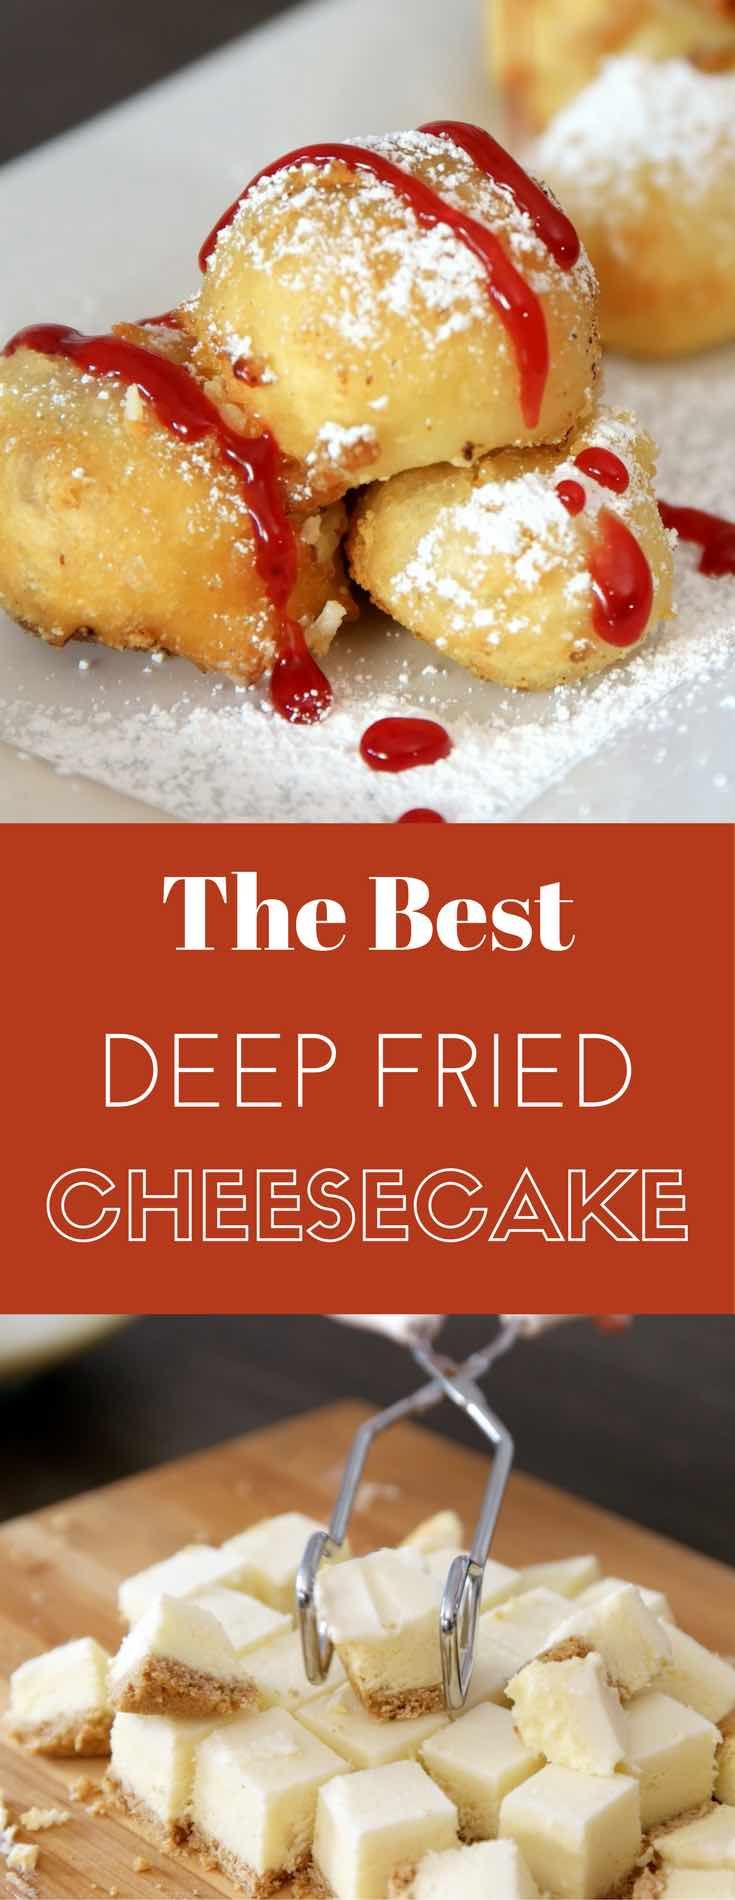 Deep Fried Cheesecake - you can't resist this delicious dessert made with your favorite frozen or leftover cheesecake. It only requires a few simple ingredients: flour, baking powder, salt, sugar, milk and oil. It's great for a party, cheat days or a midnight snack. So yummy! No bake dessert. Vegetarian. Video recipe. | tipbuzz.com